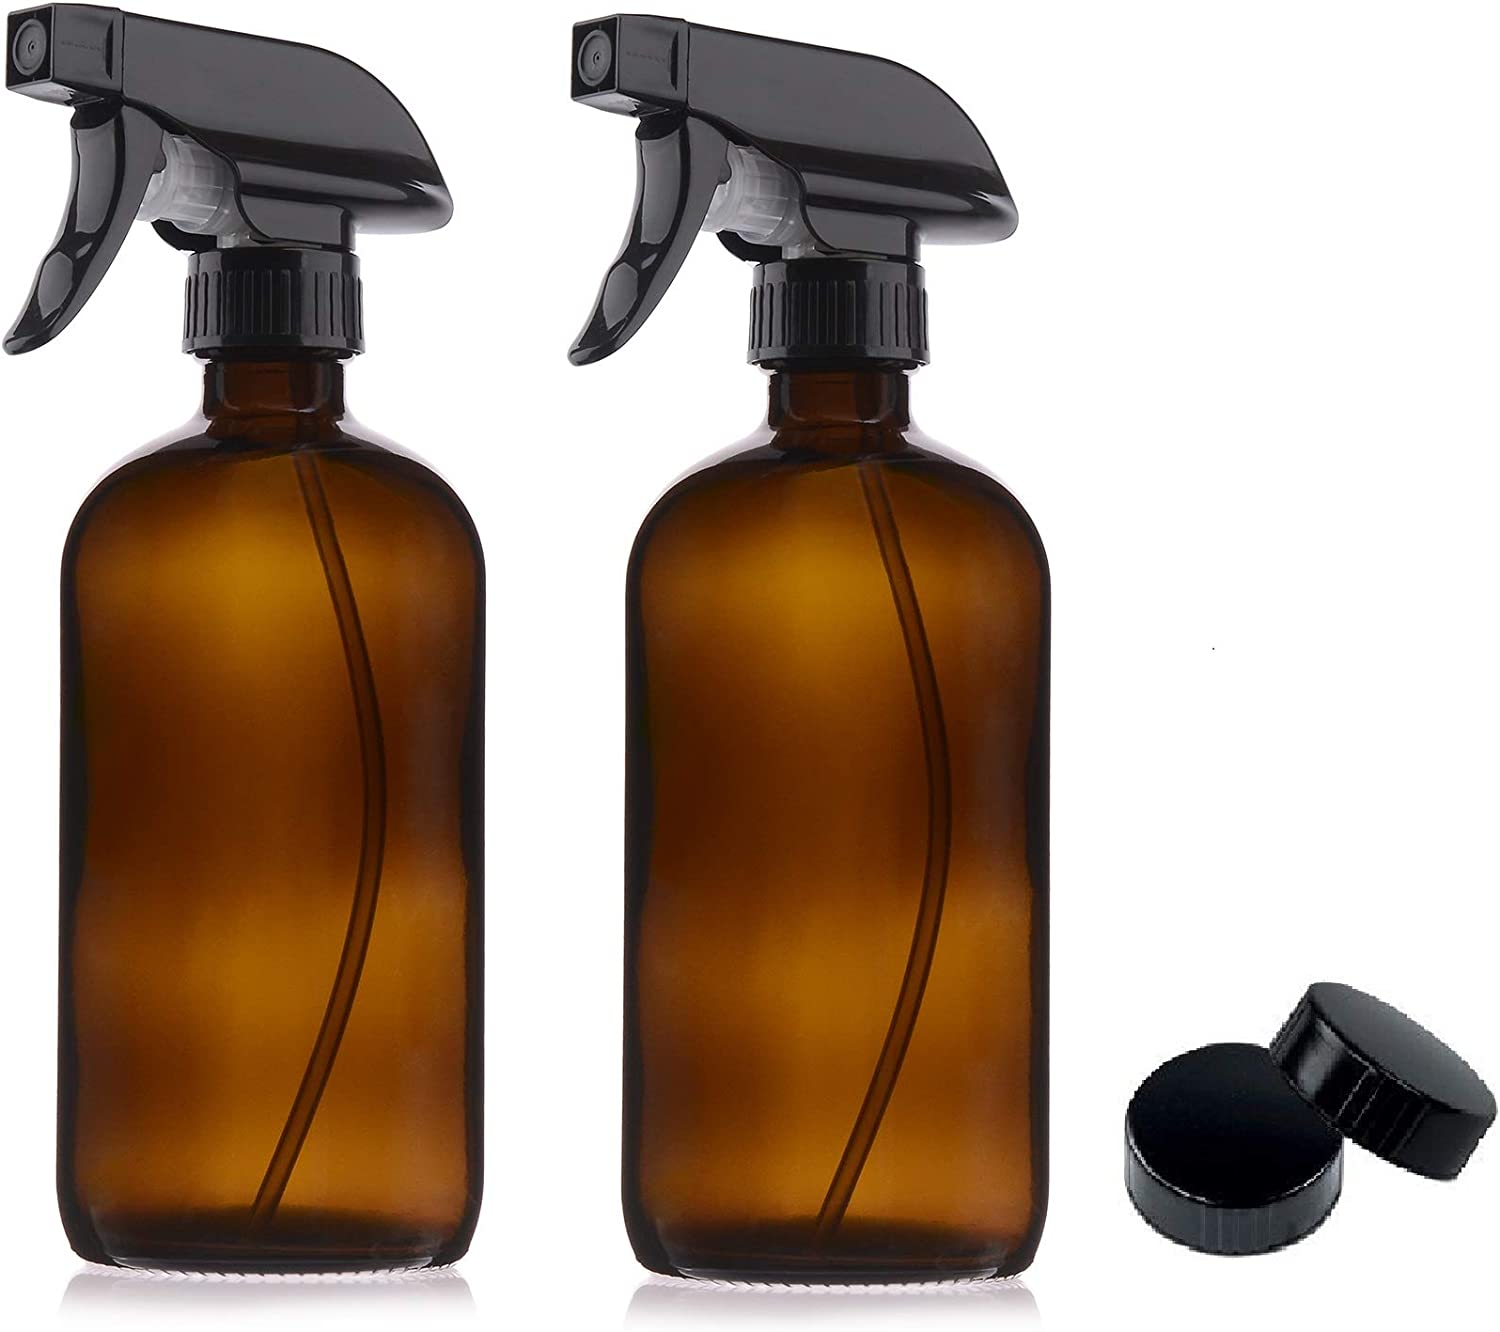 2 Pack Amber Glass Spray Bottles 16oz & Caps - Mist & Stream Sprayer - Boston Round Heavy Duty Bottle - Refillable for Essential Oils, Cleaning, Kitchen, Hair, Perfumes